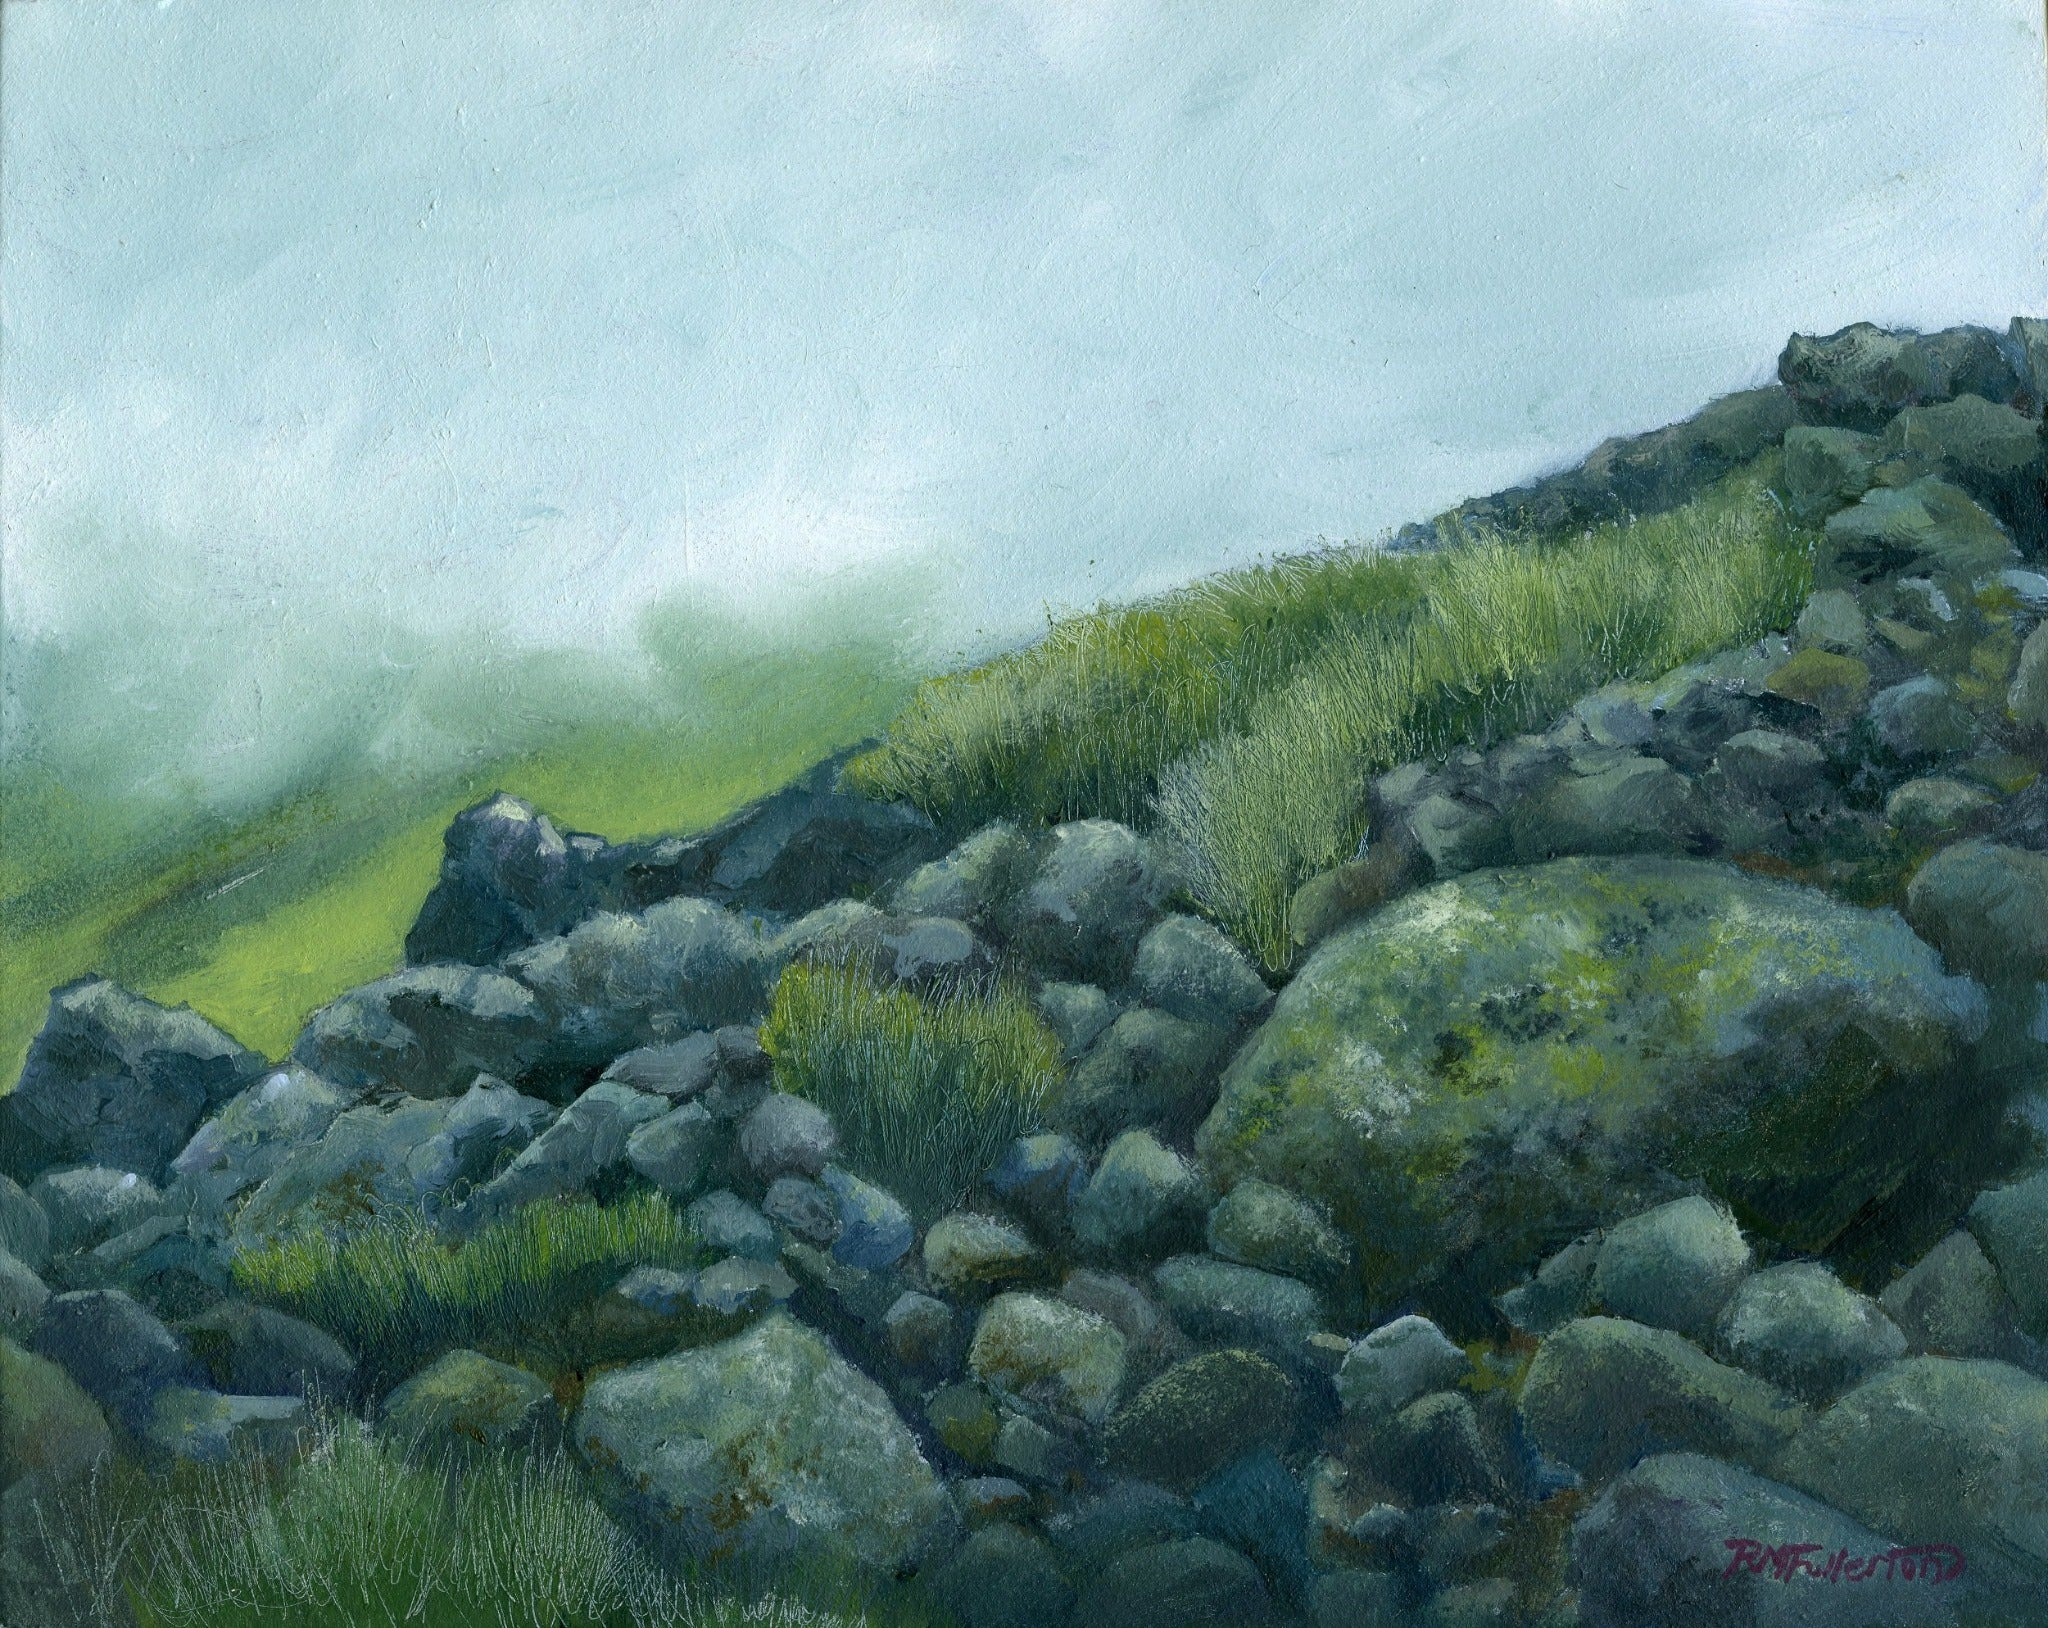 """Mist and Rocks"" is an 8 by 10 inch oil on panel painting by Rebecca M. Fullerton,  depicting boulders and grasses in the alpine zone of the Presidential Range in the White Mountain National Forest of New Hampshire. Low clouds and mist skim over the slopes and the soft greys and greens make the scene feel somber and spooky, just like a day on the range when it's socked in."